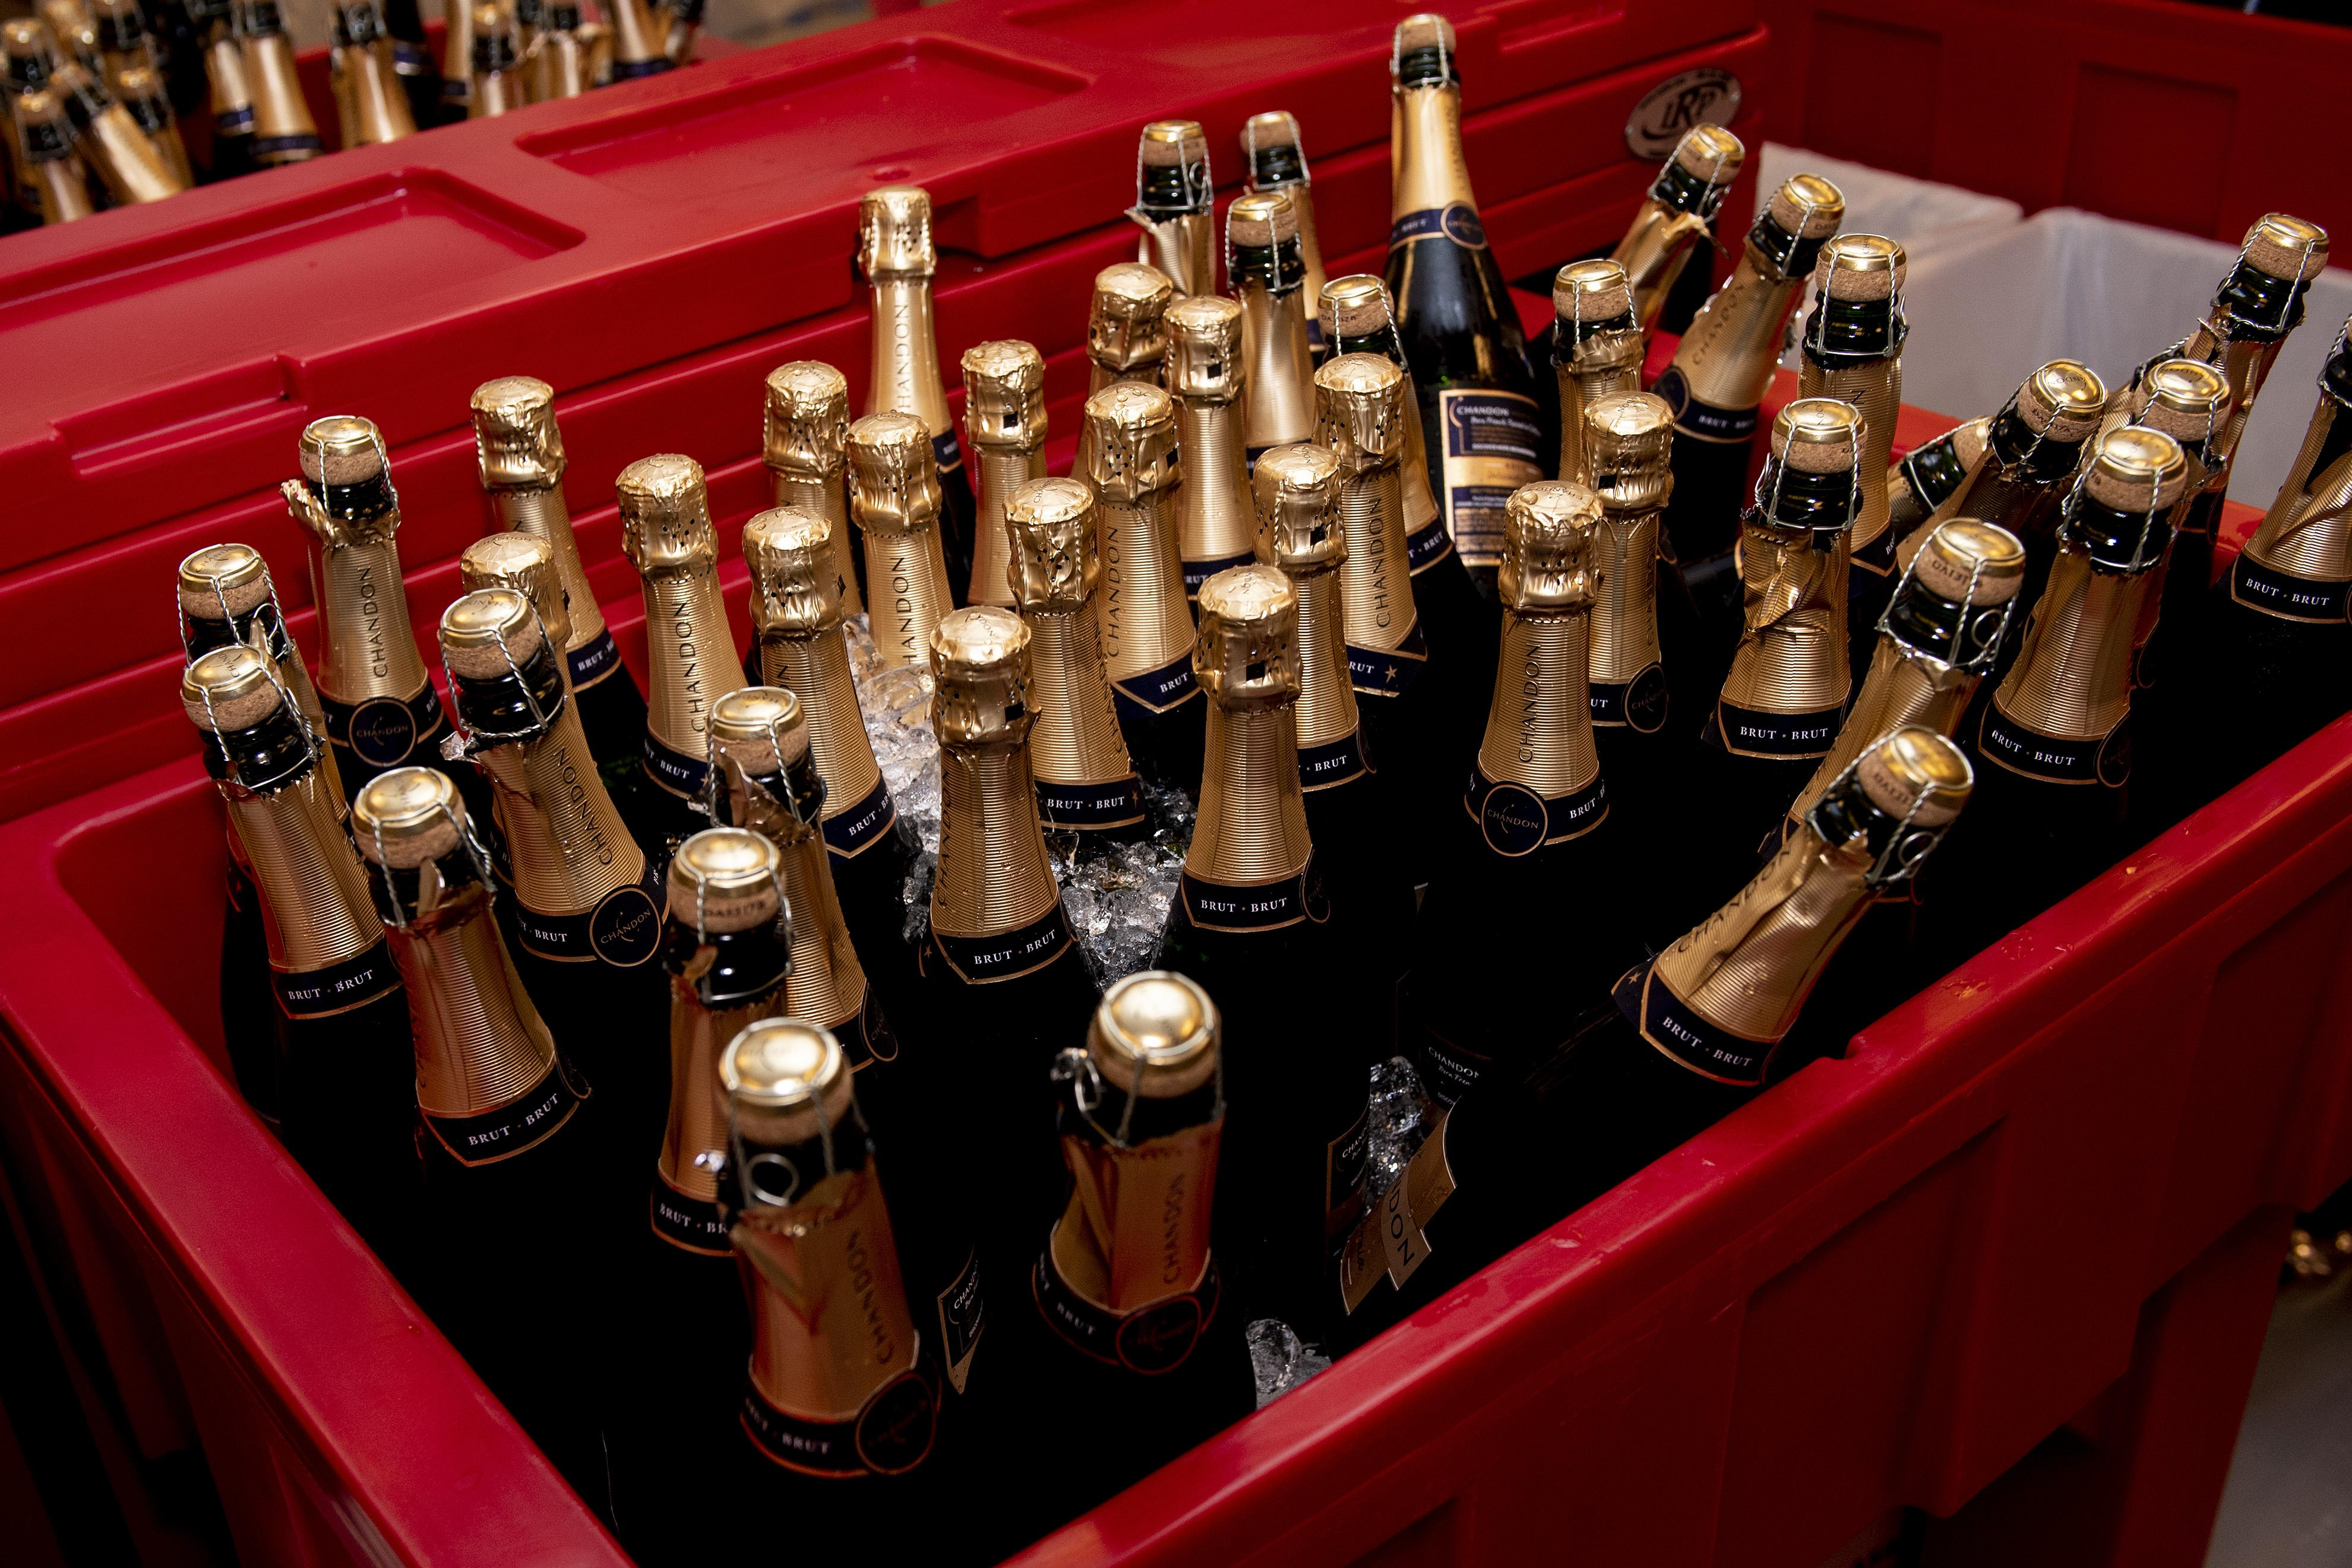 Several bottles of champagne were waiting for the Boston Red Sox to celebrate with